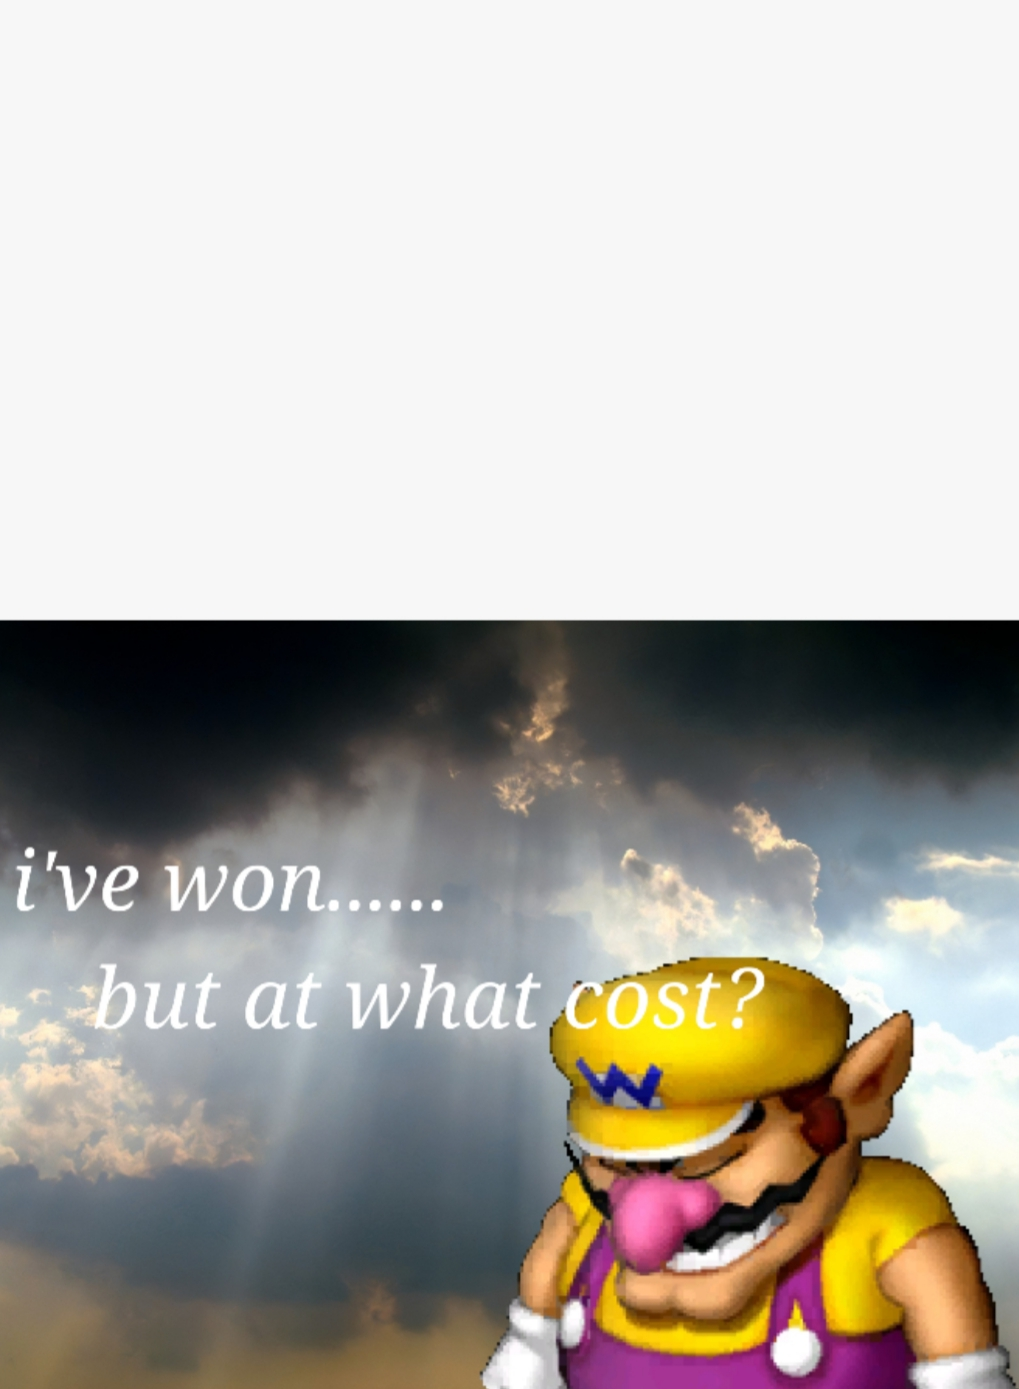 I've won but at what cost Blank Template - Imgflip